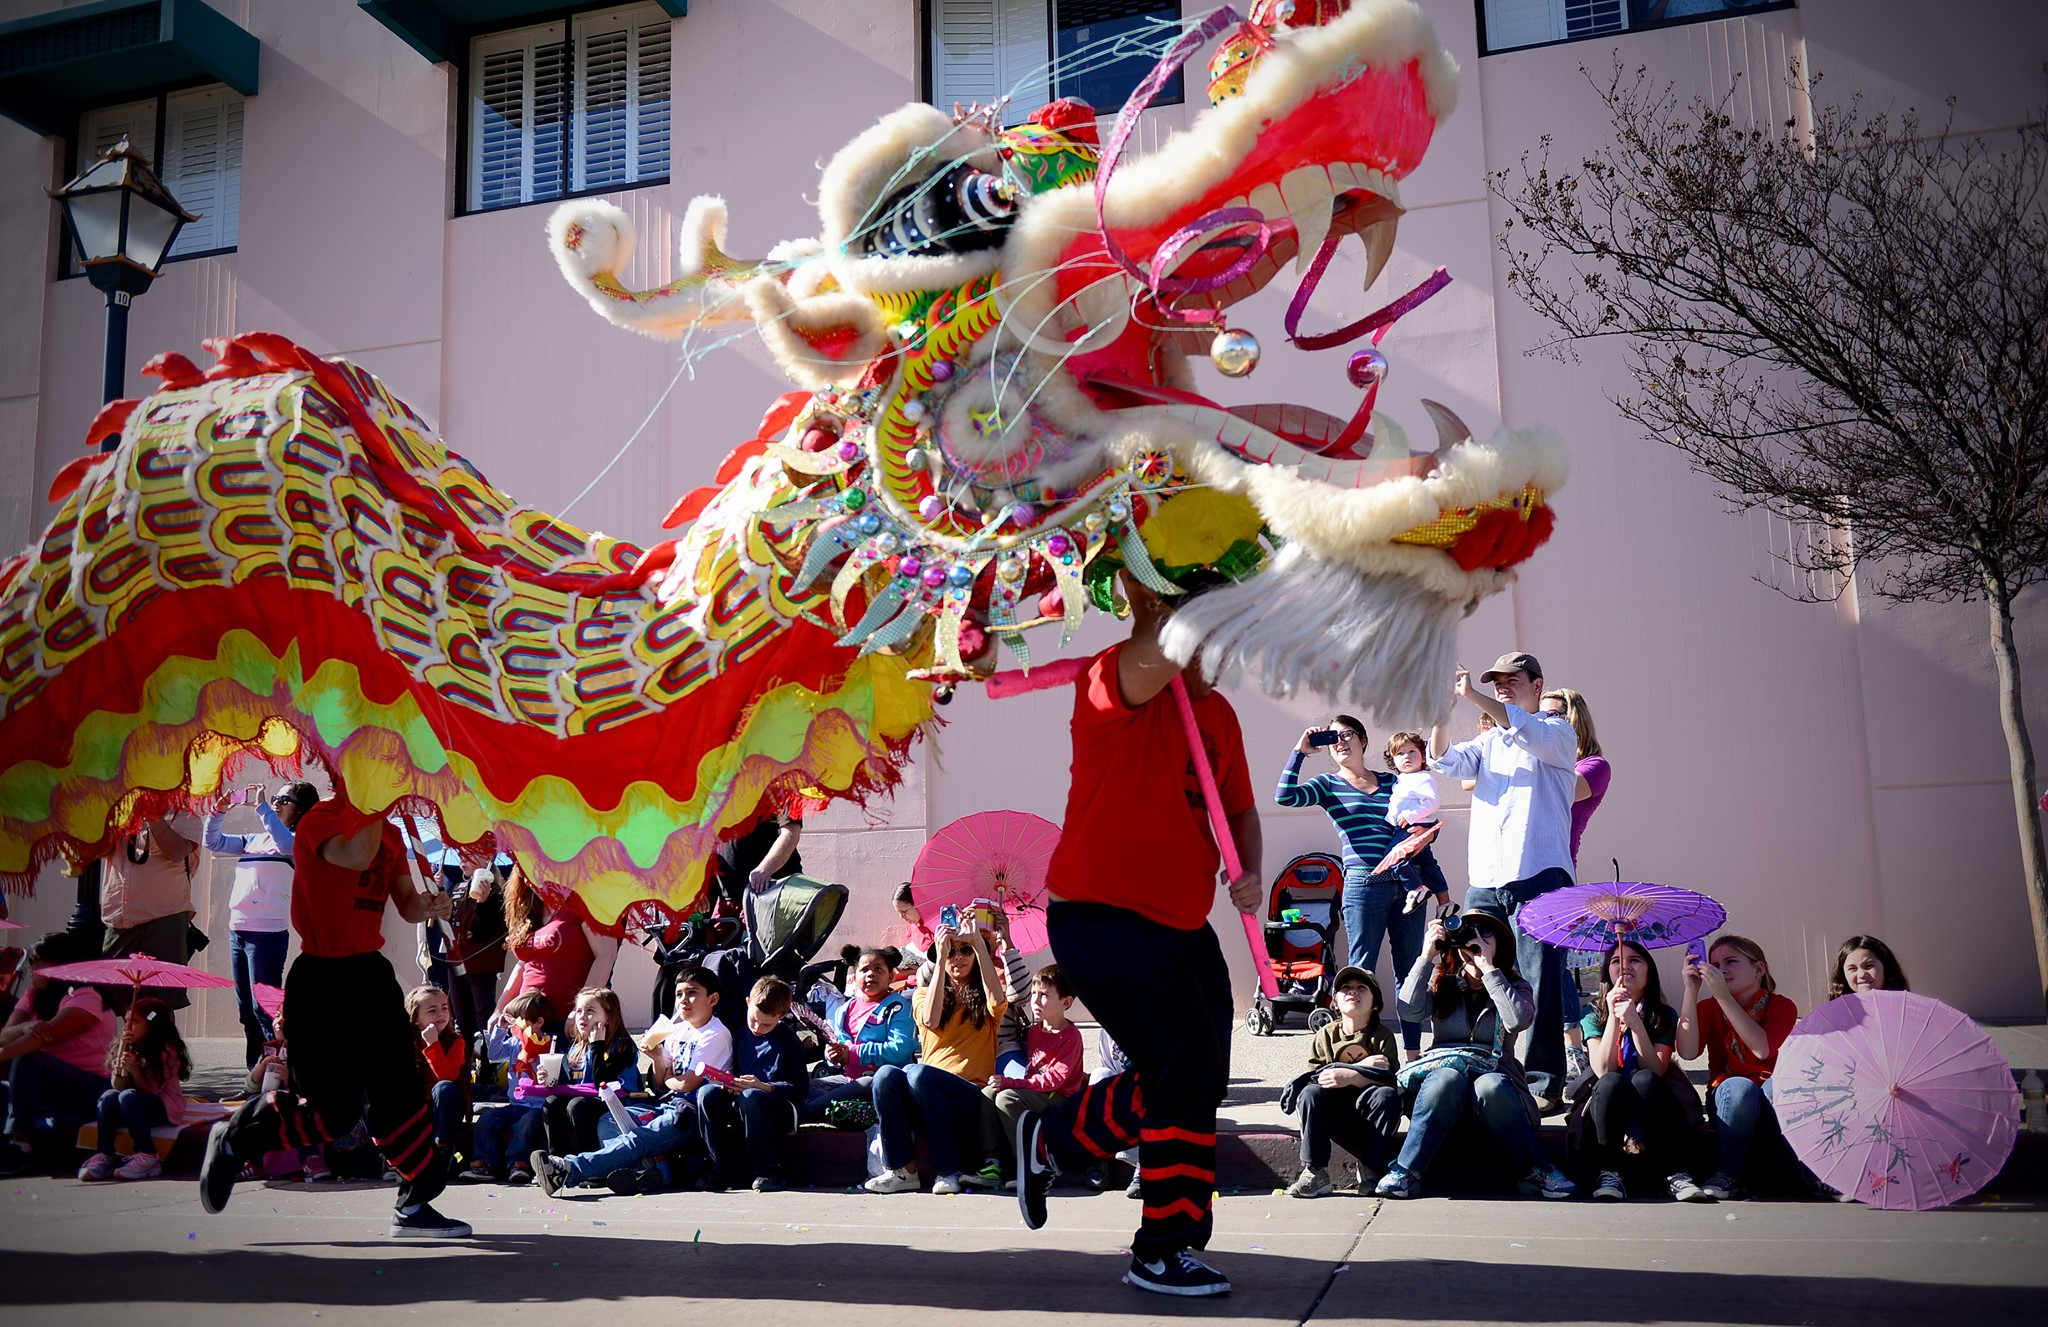 The 121st Golden Dragon Parade